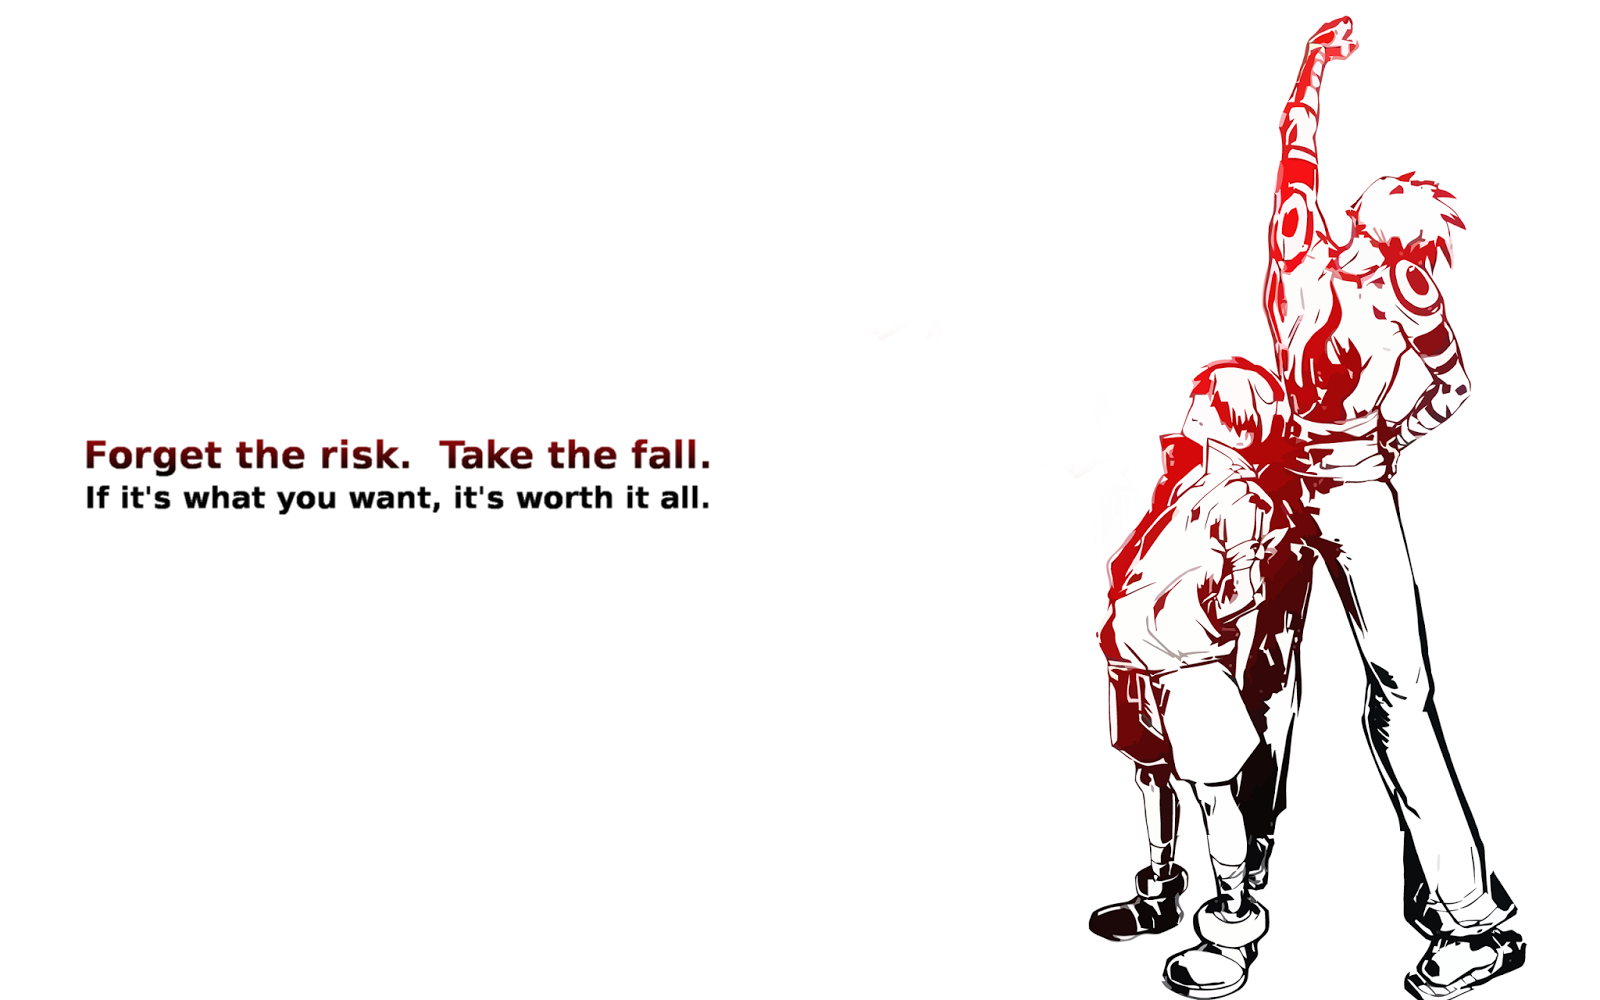 DOWNLOAD RISK AND FALL WALLPAPER